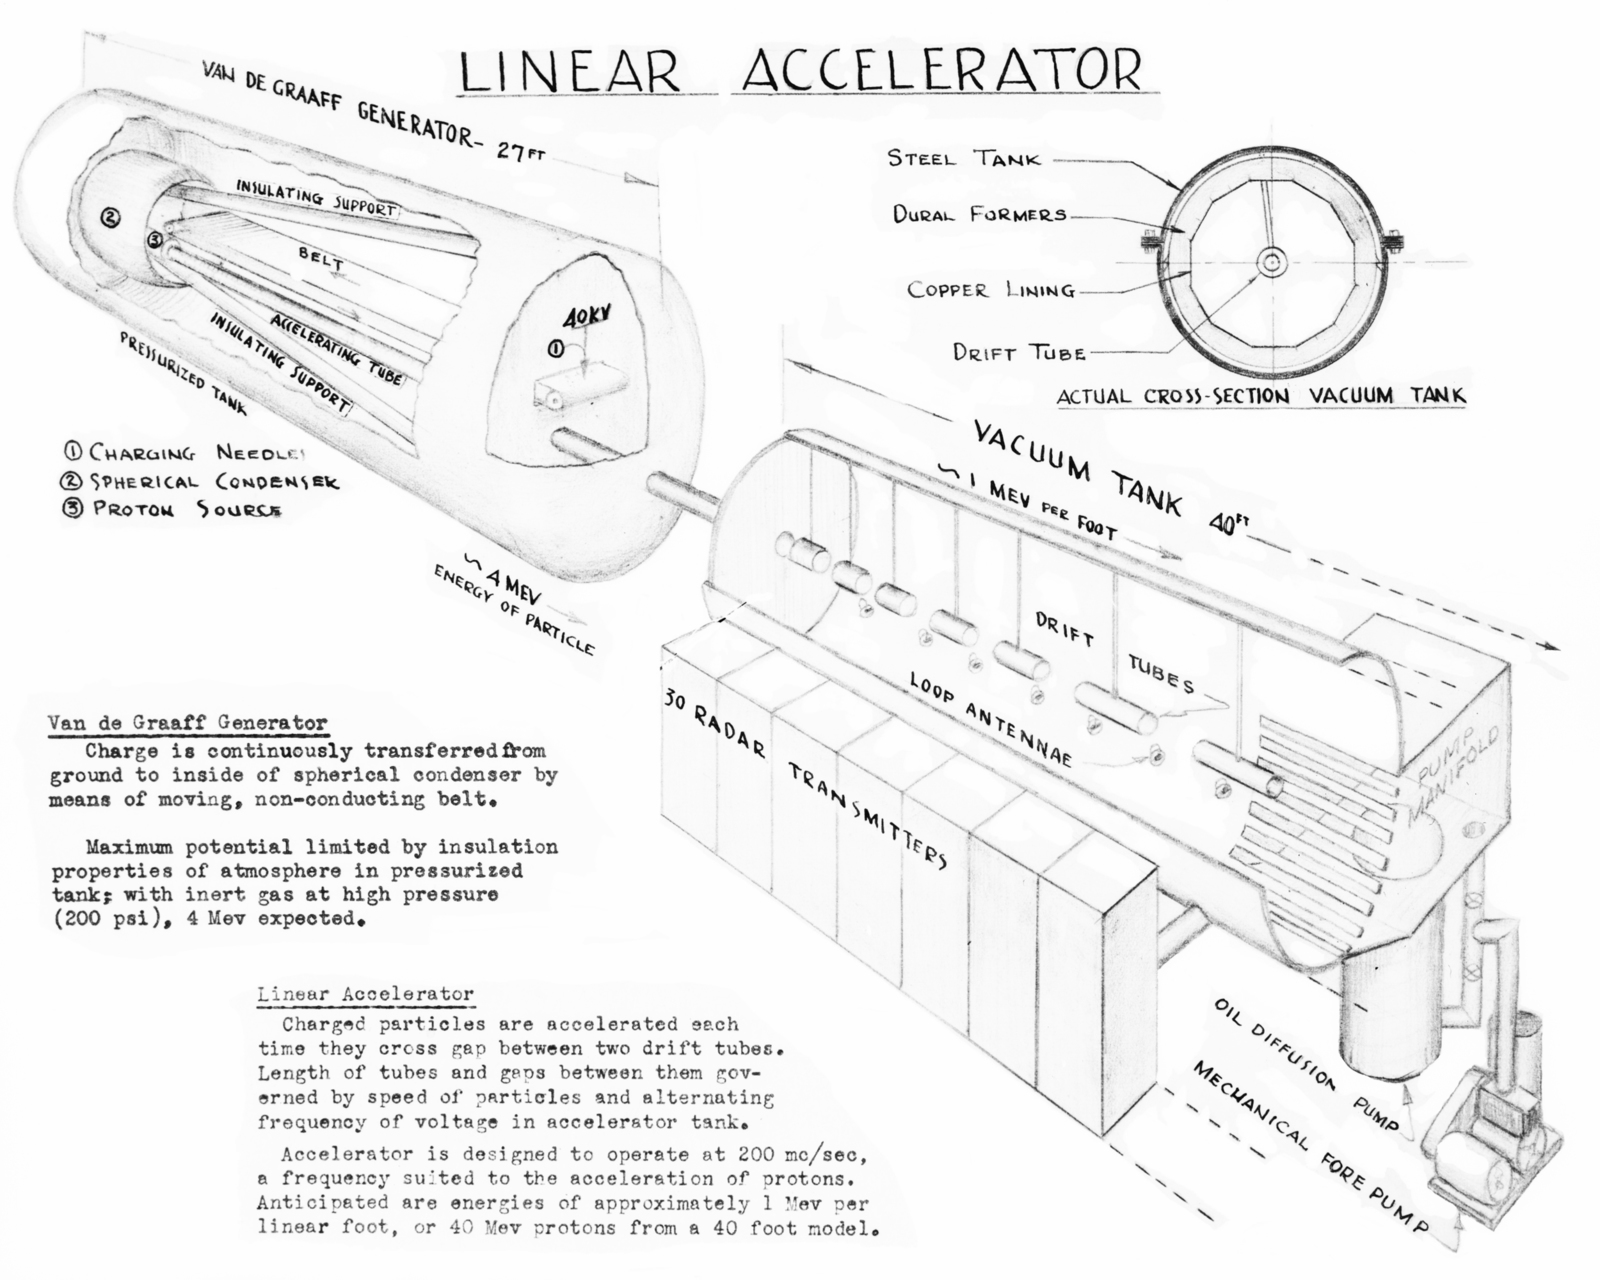 hight resolution of drawing of linac for publication contains description of van de graaff generator and linear accelerator